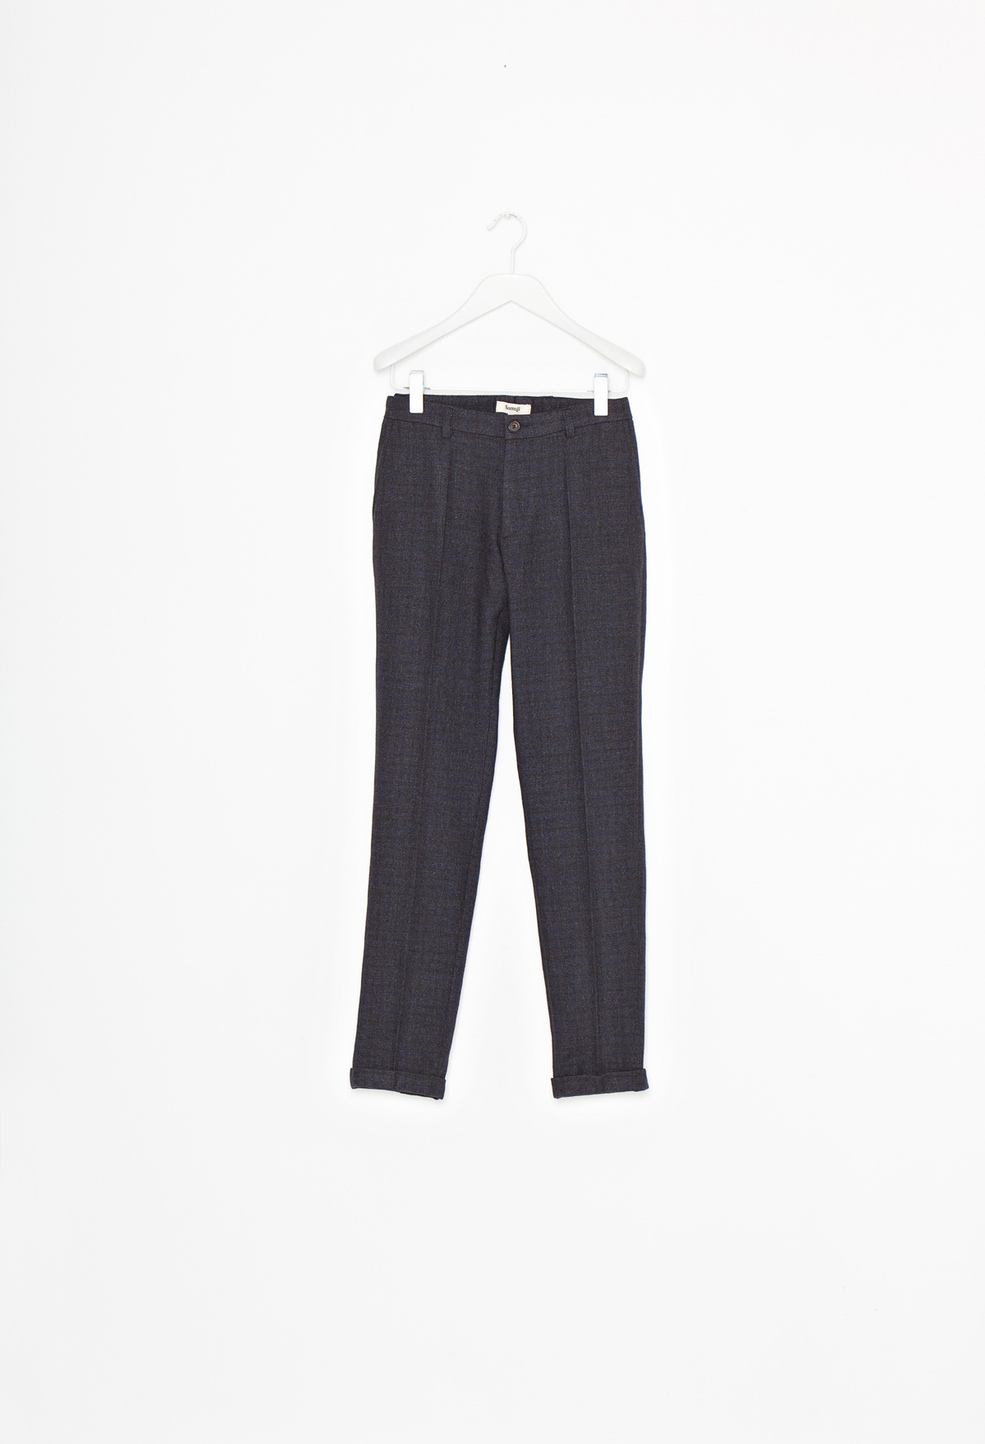 Presley Trousers